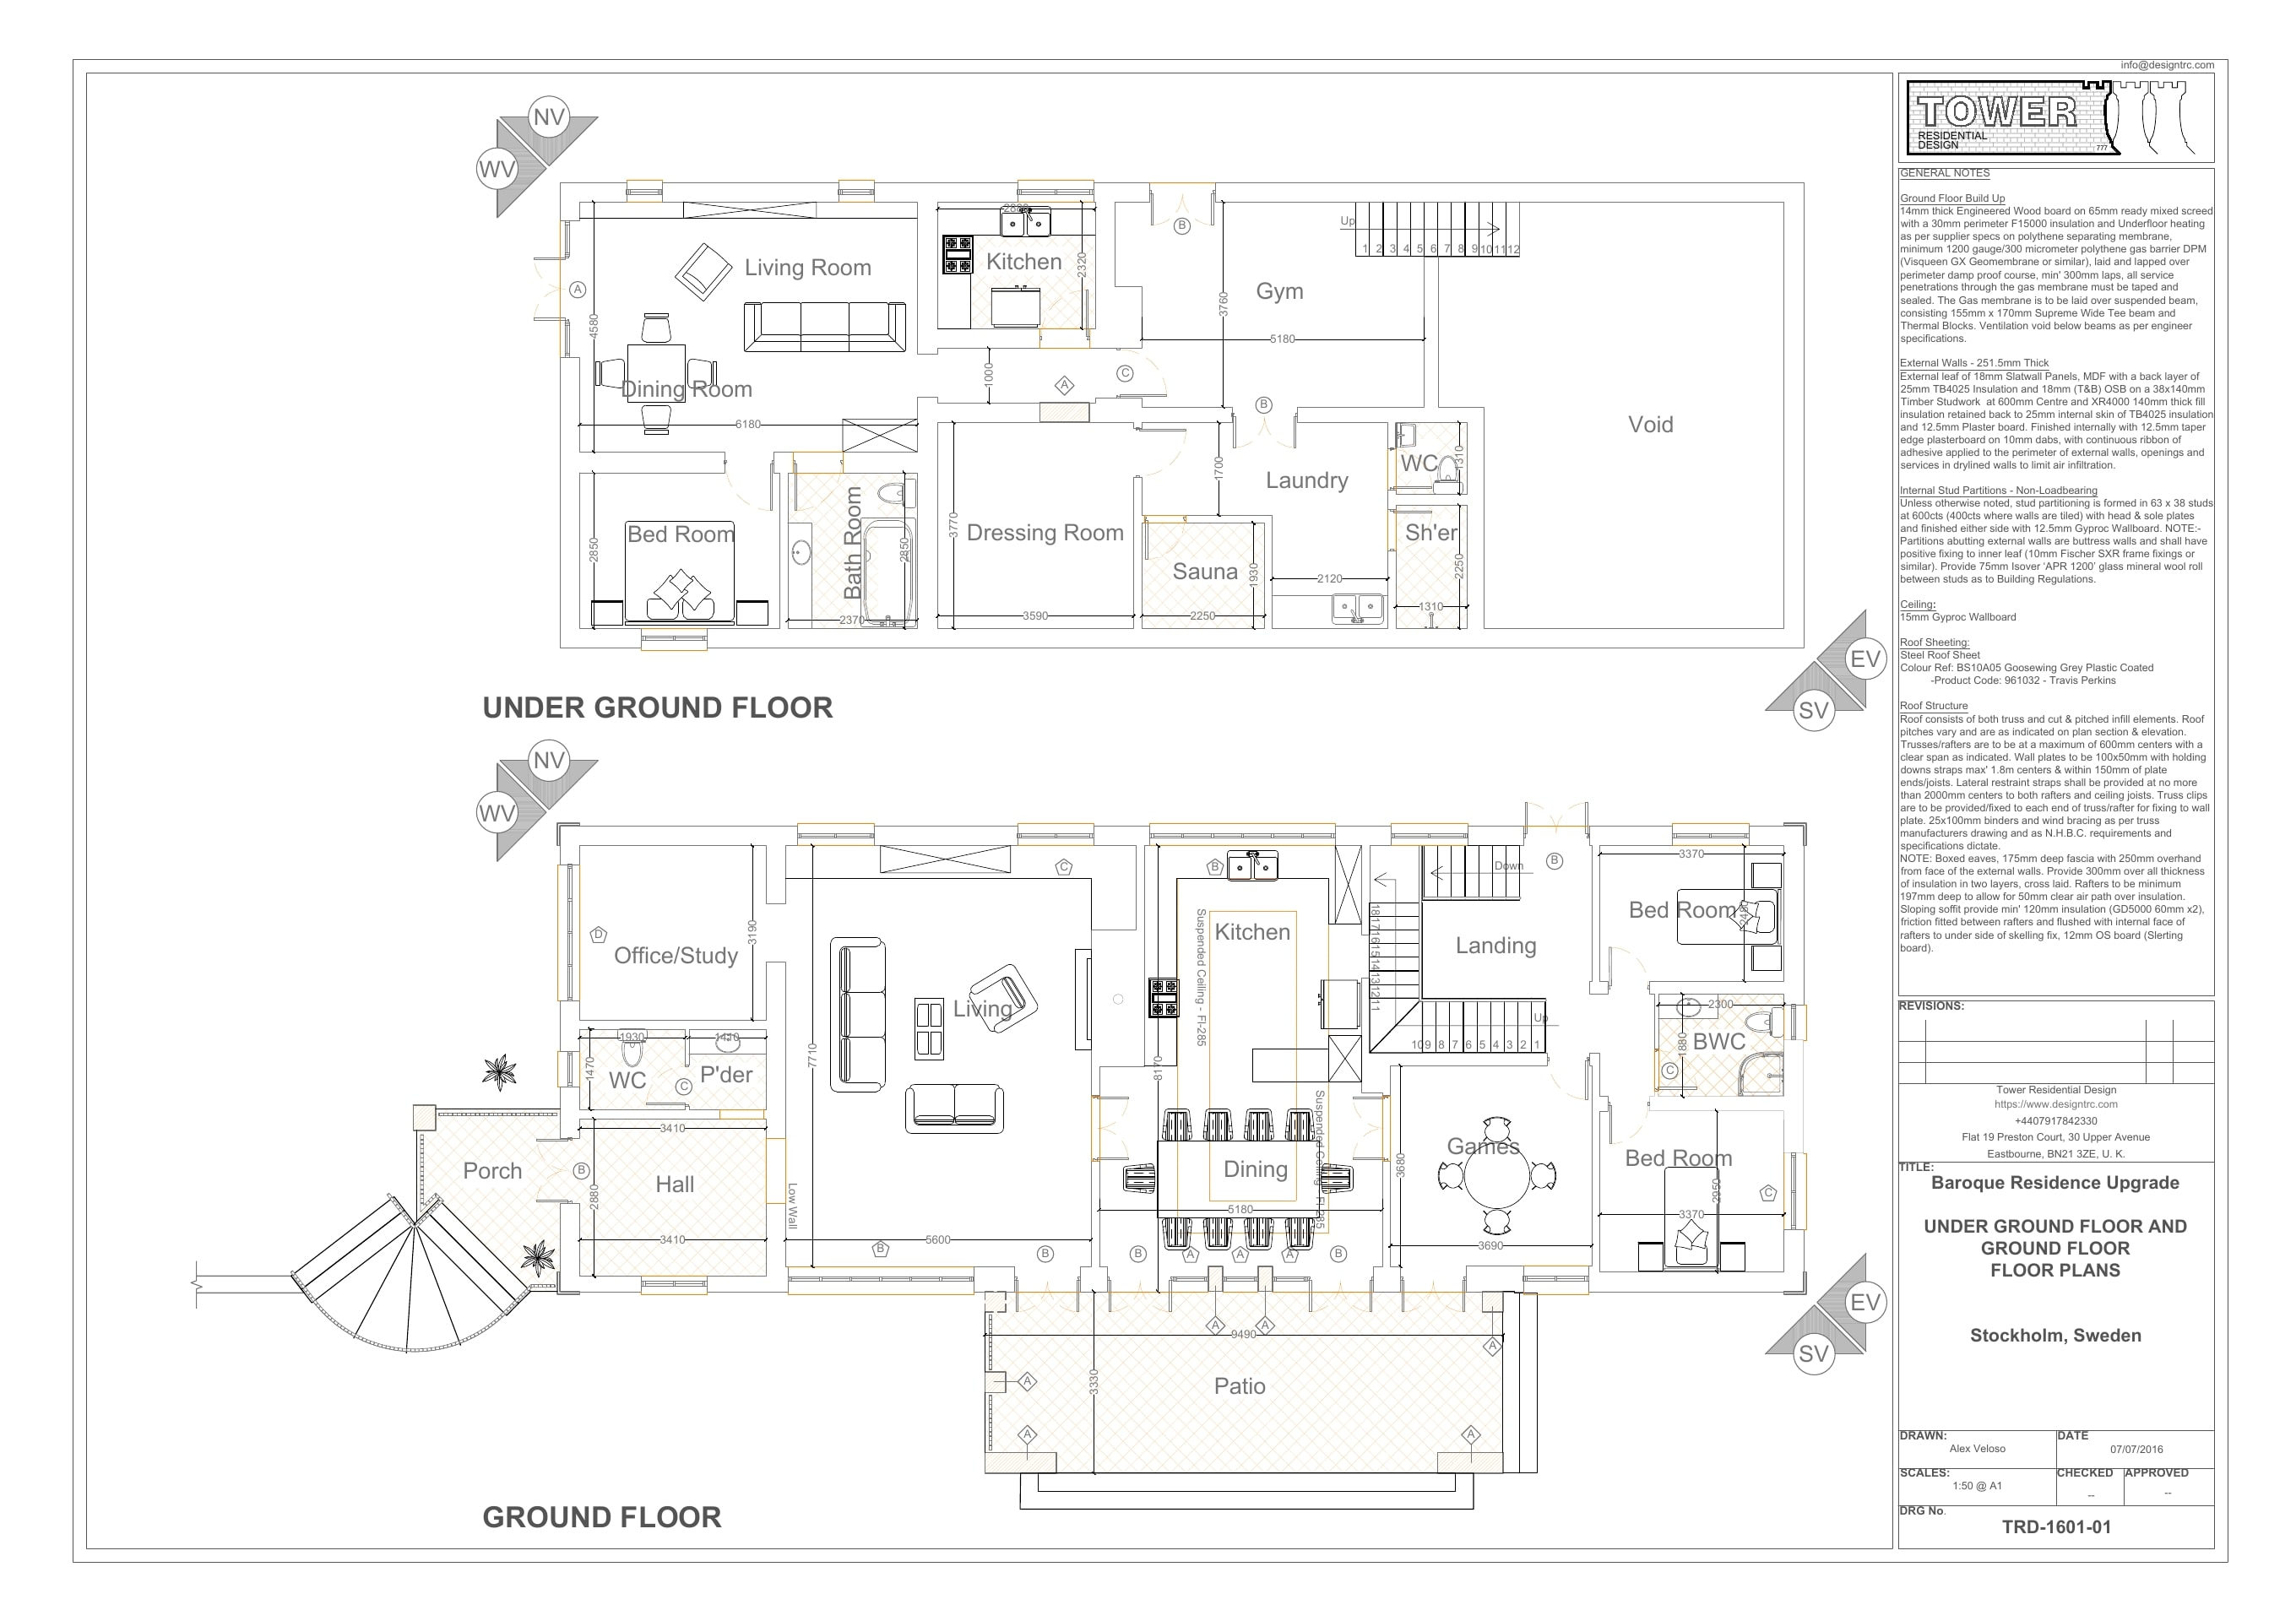 French Architecture - Floor Plan